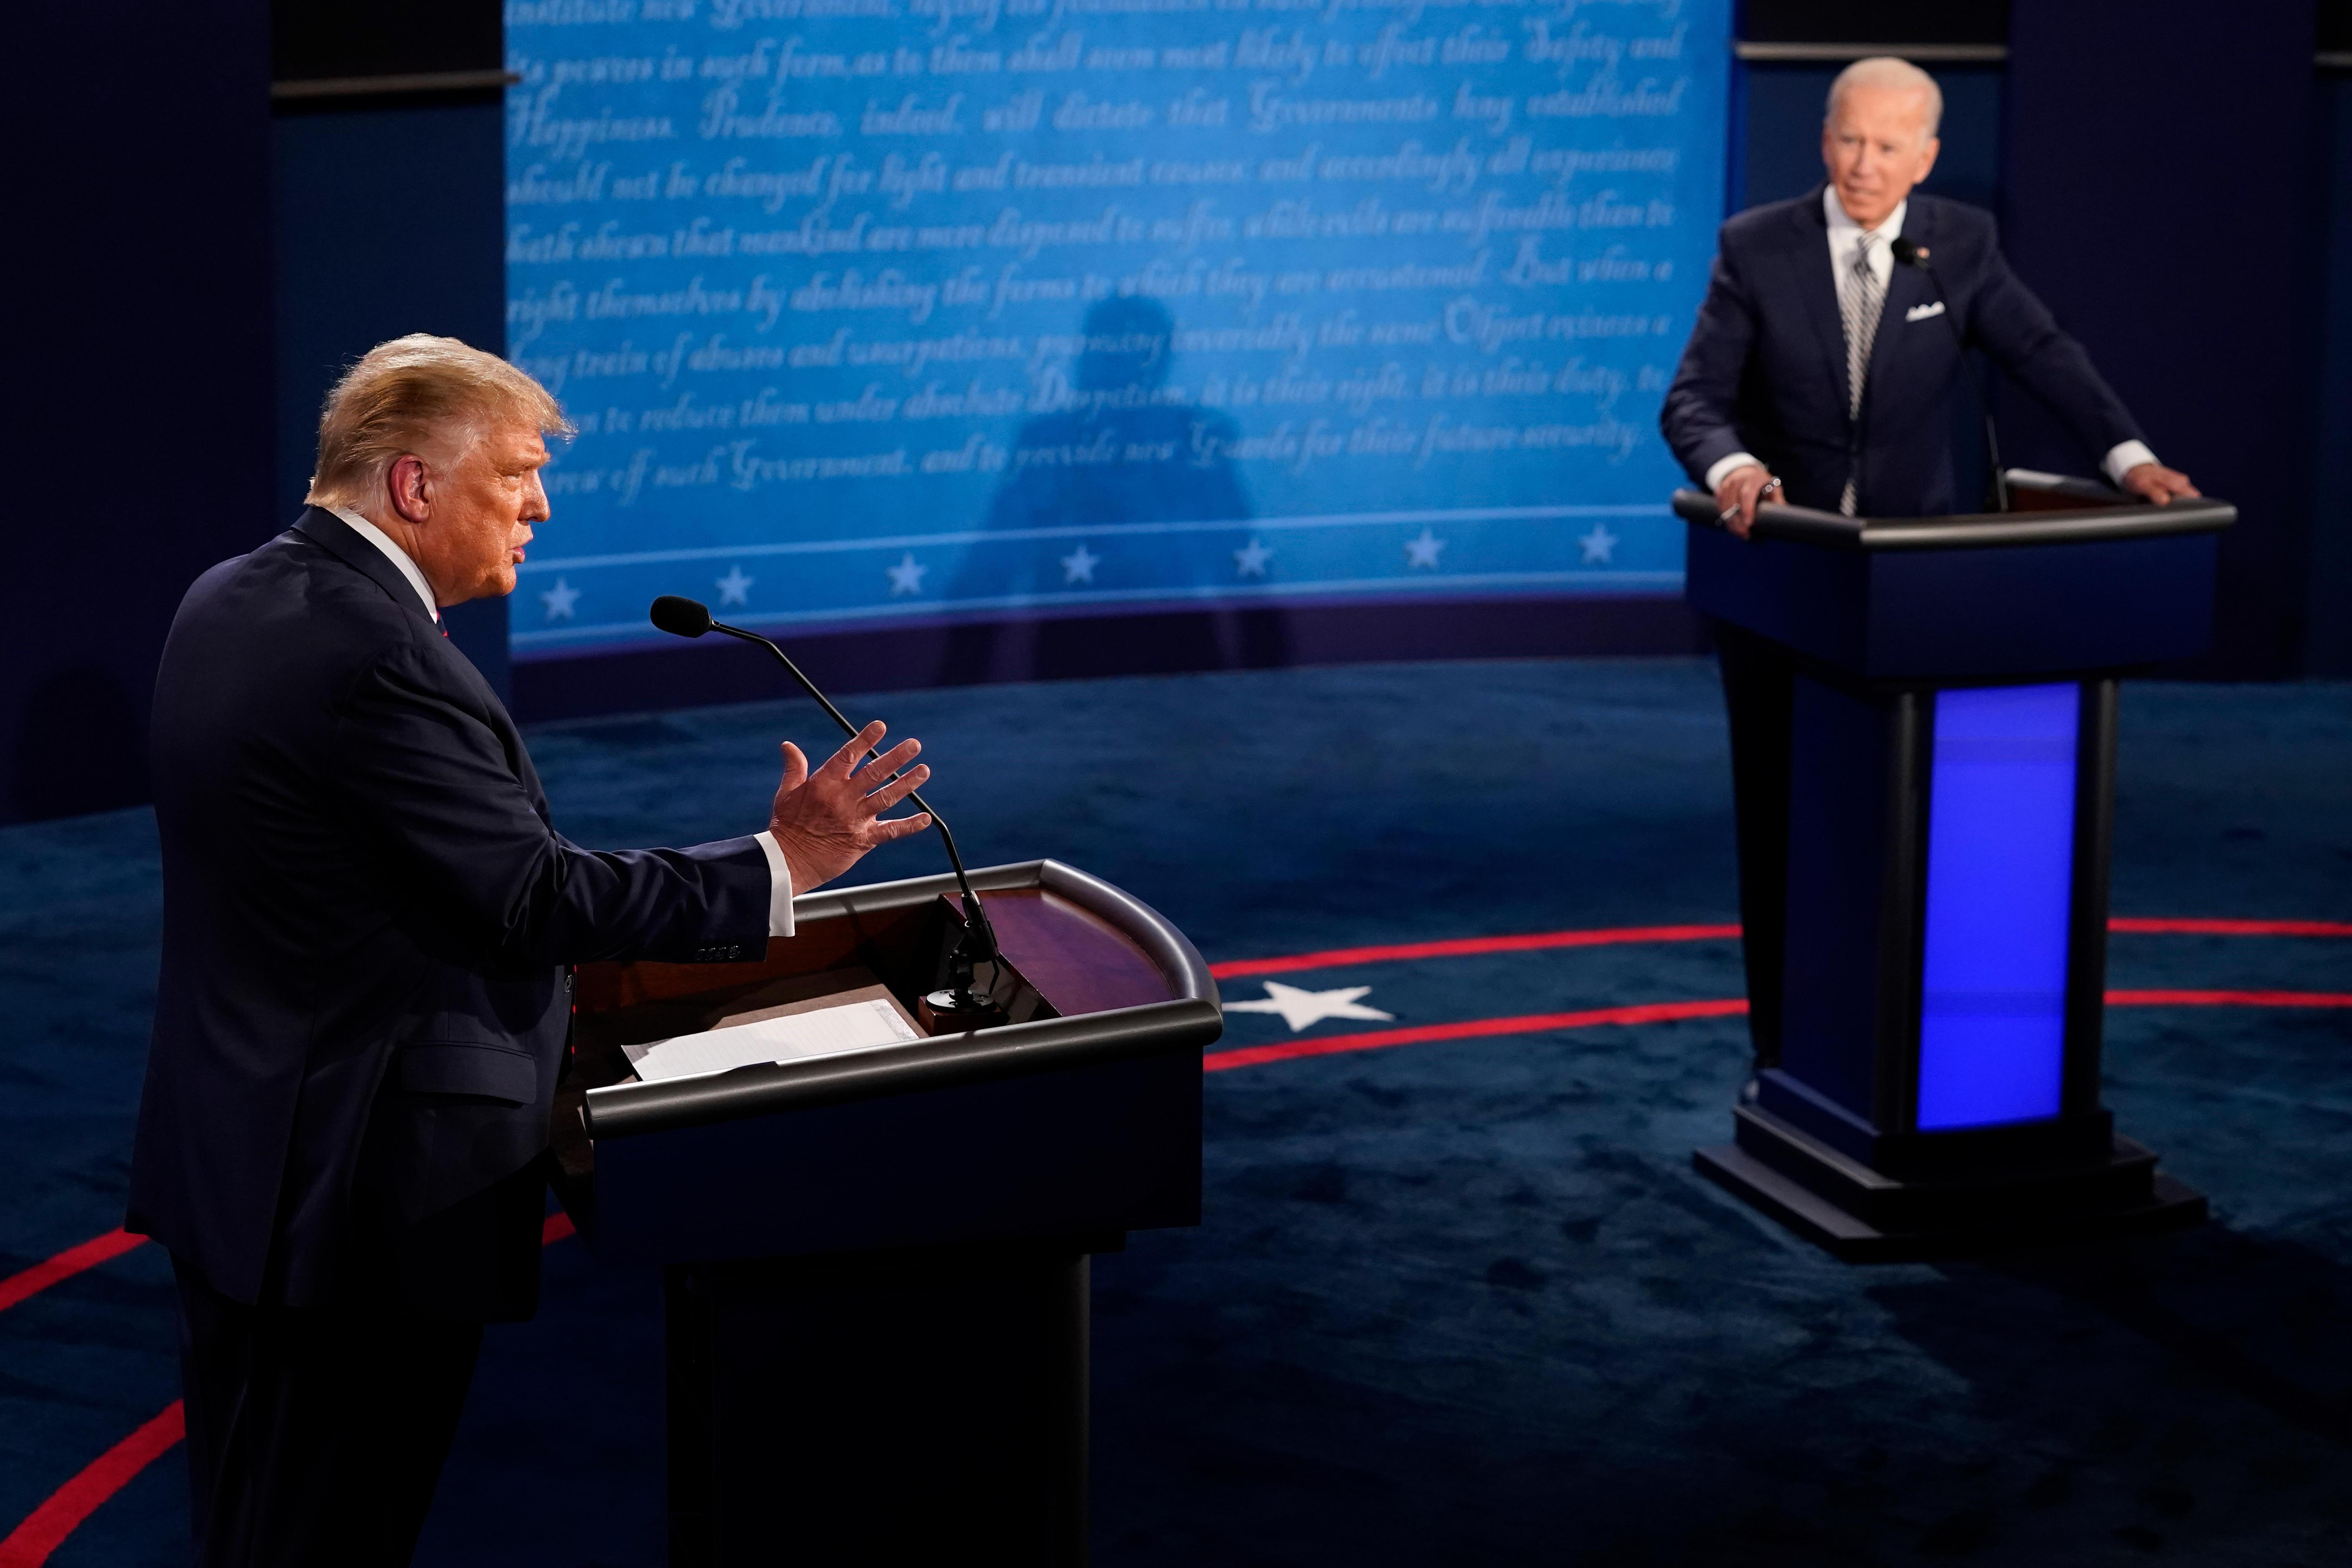 Trump campaign says debate structure should not be changed